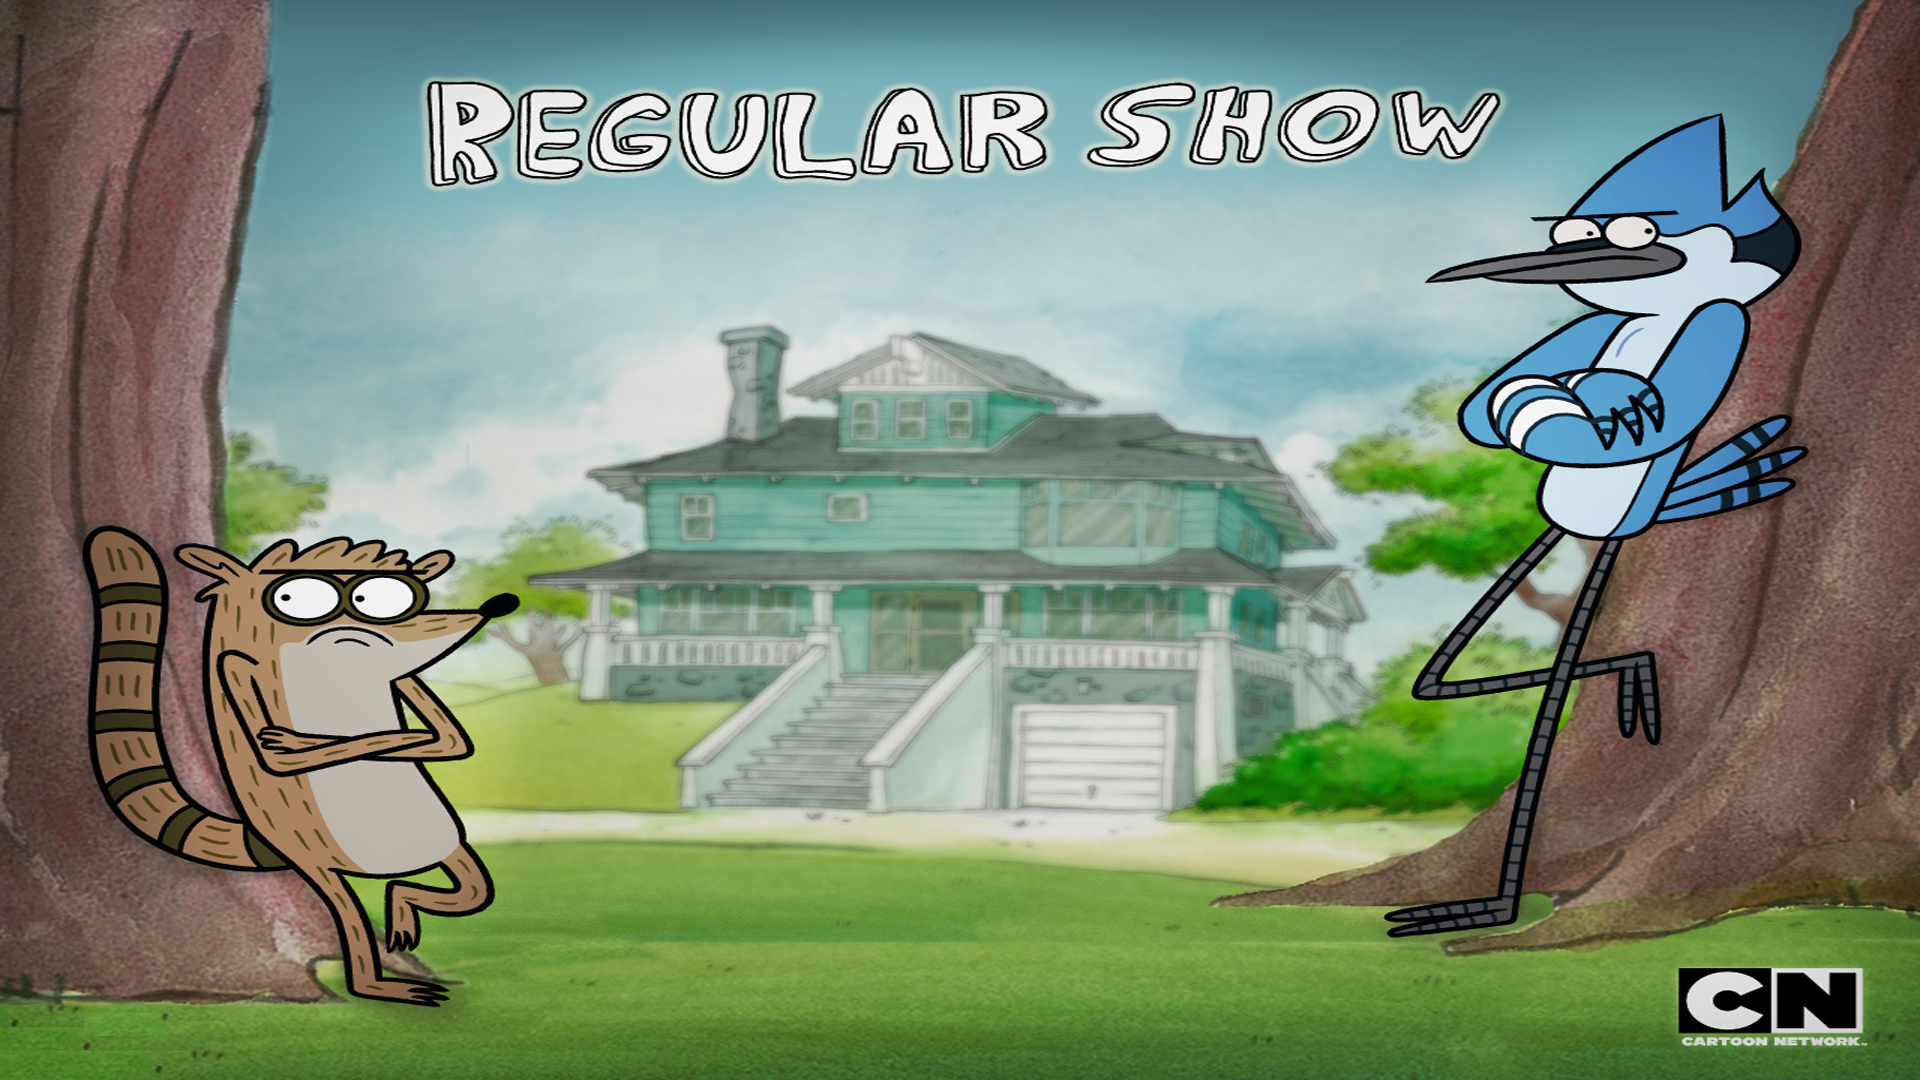 The Regular Show - Regular Show Wallpaper (25861119) - Fanpop: www.fanpop.com/clubs/regular-show/images/25861119/title/regular...